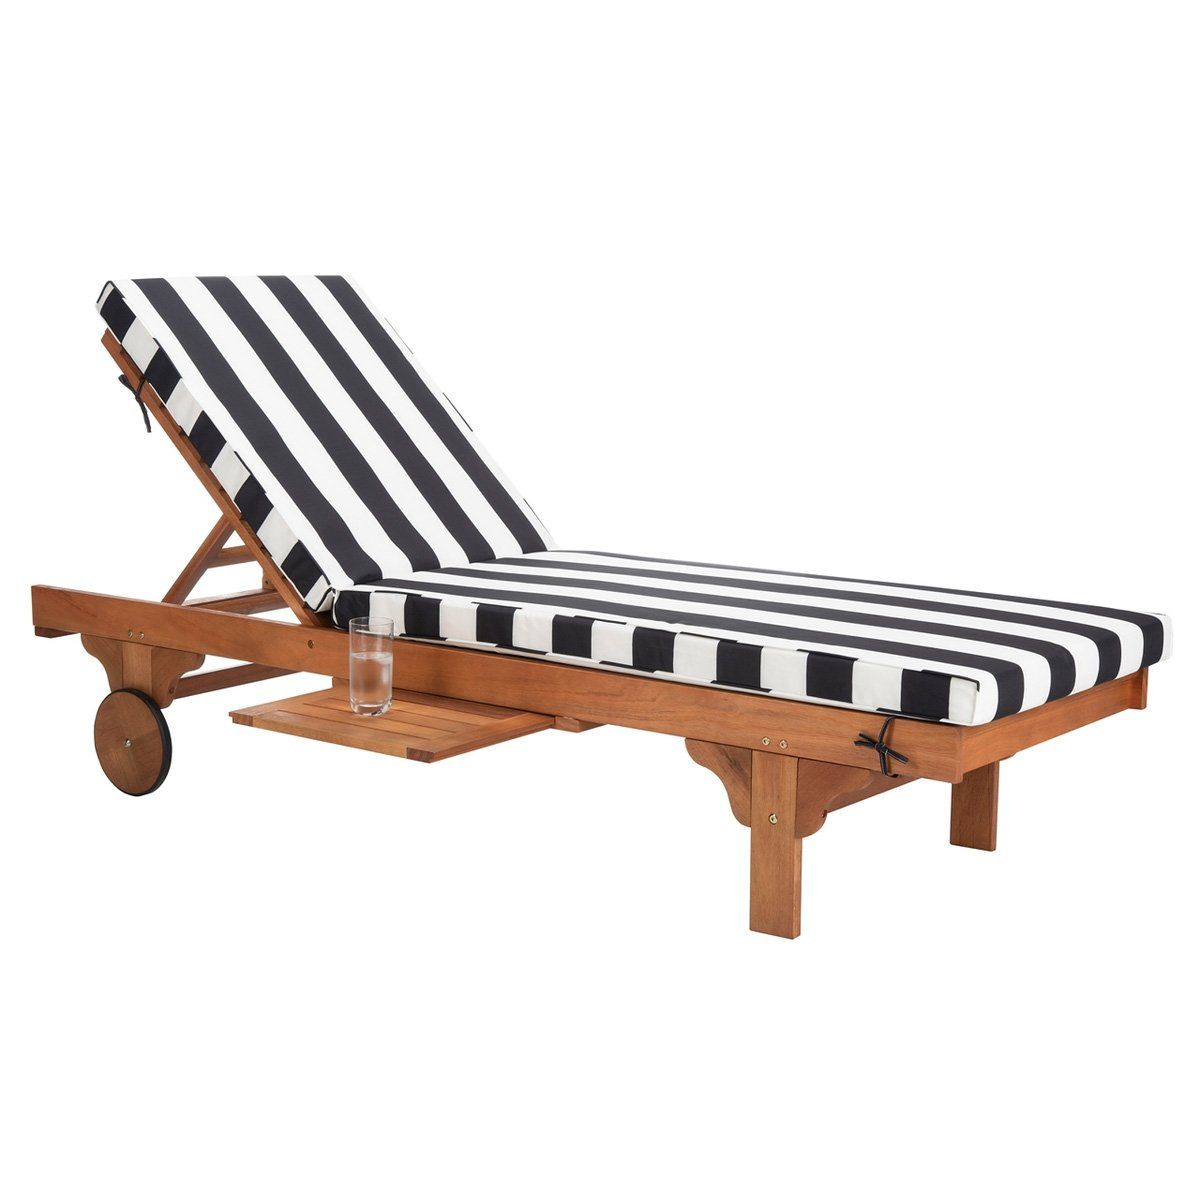 Tiffany Striped Outdoor Chaise Lounge In 2021 Lounge Chair Outdoor Outdoor Chaise Lounge Chair Outdoor Chaise